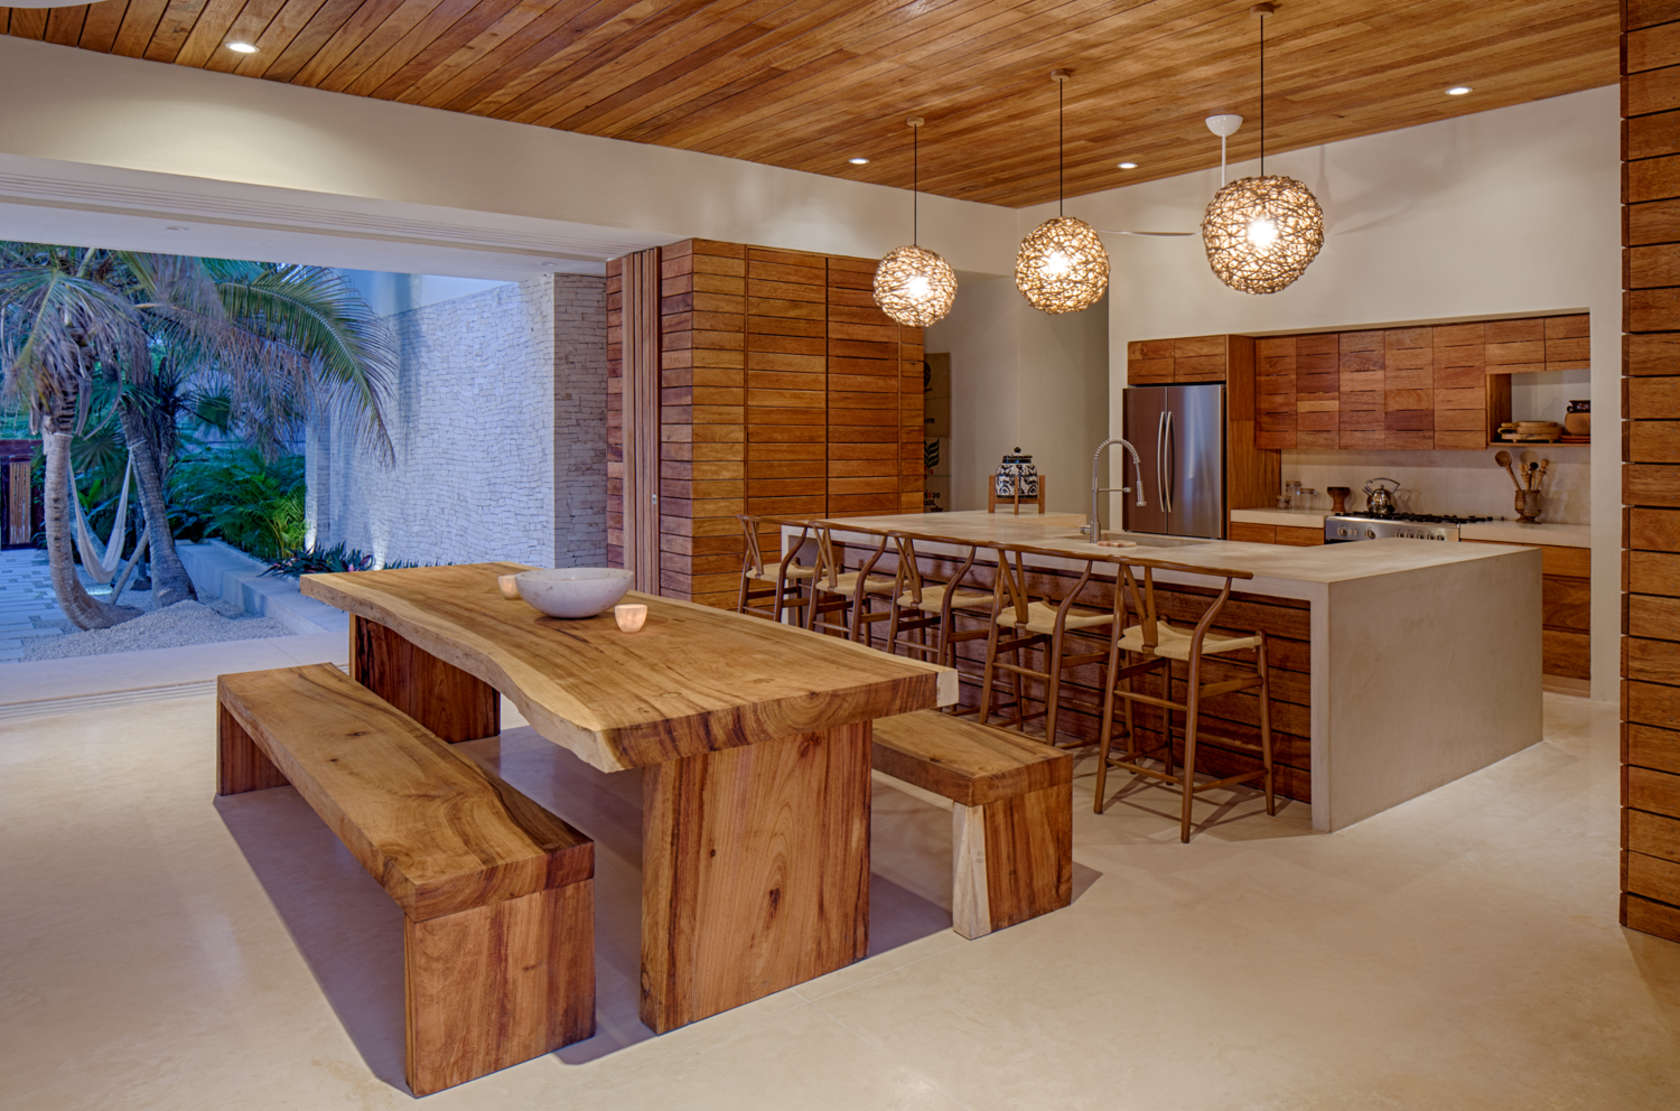 Natural Carved Dining Table - Eco friendly house in mexico does not sacrifice style